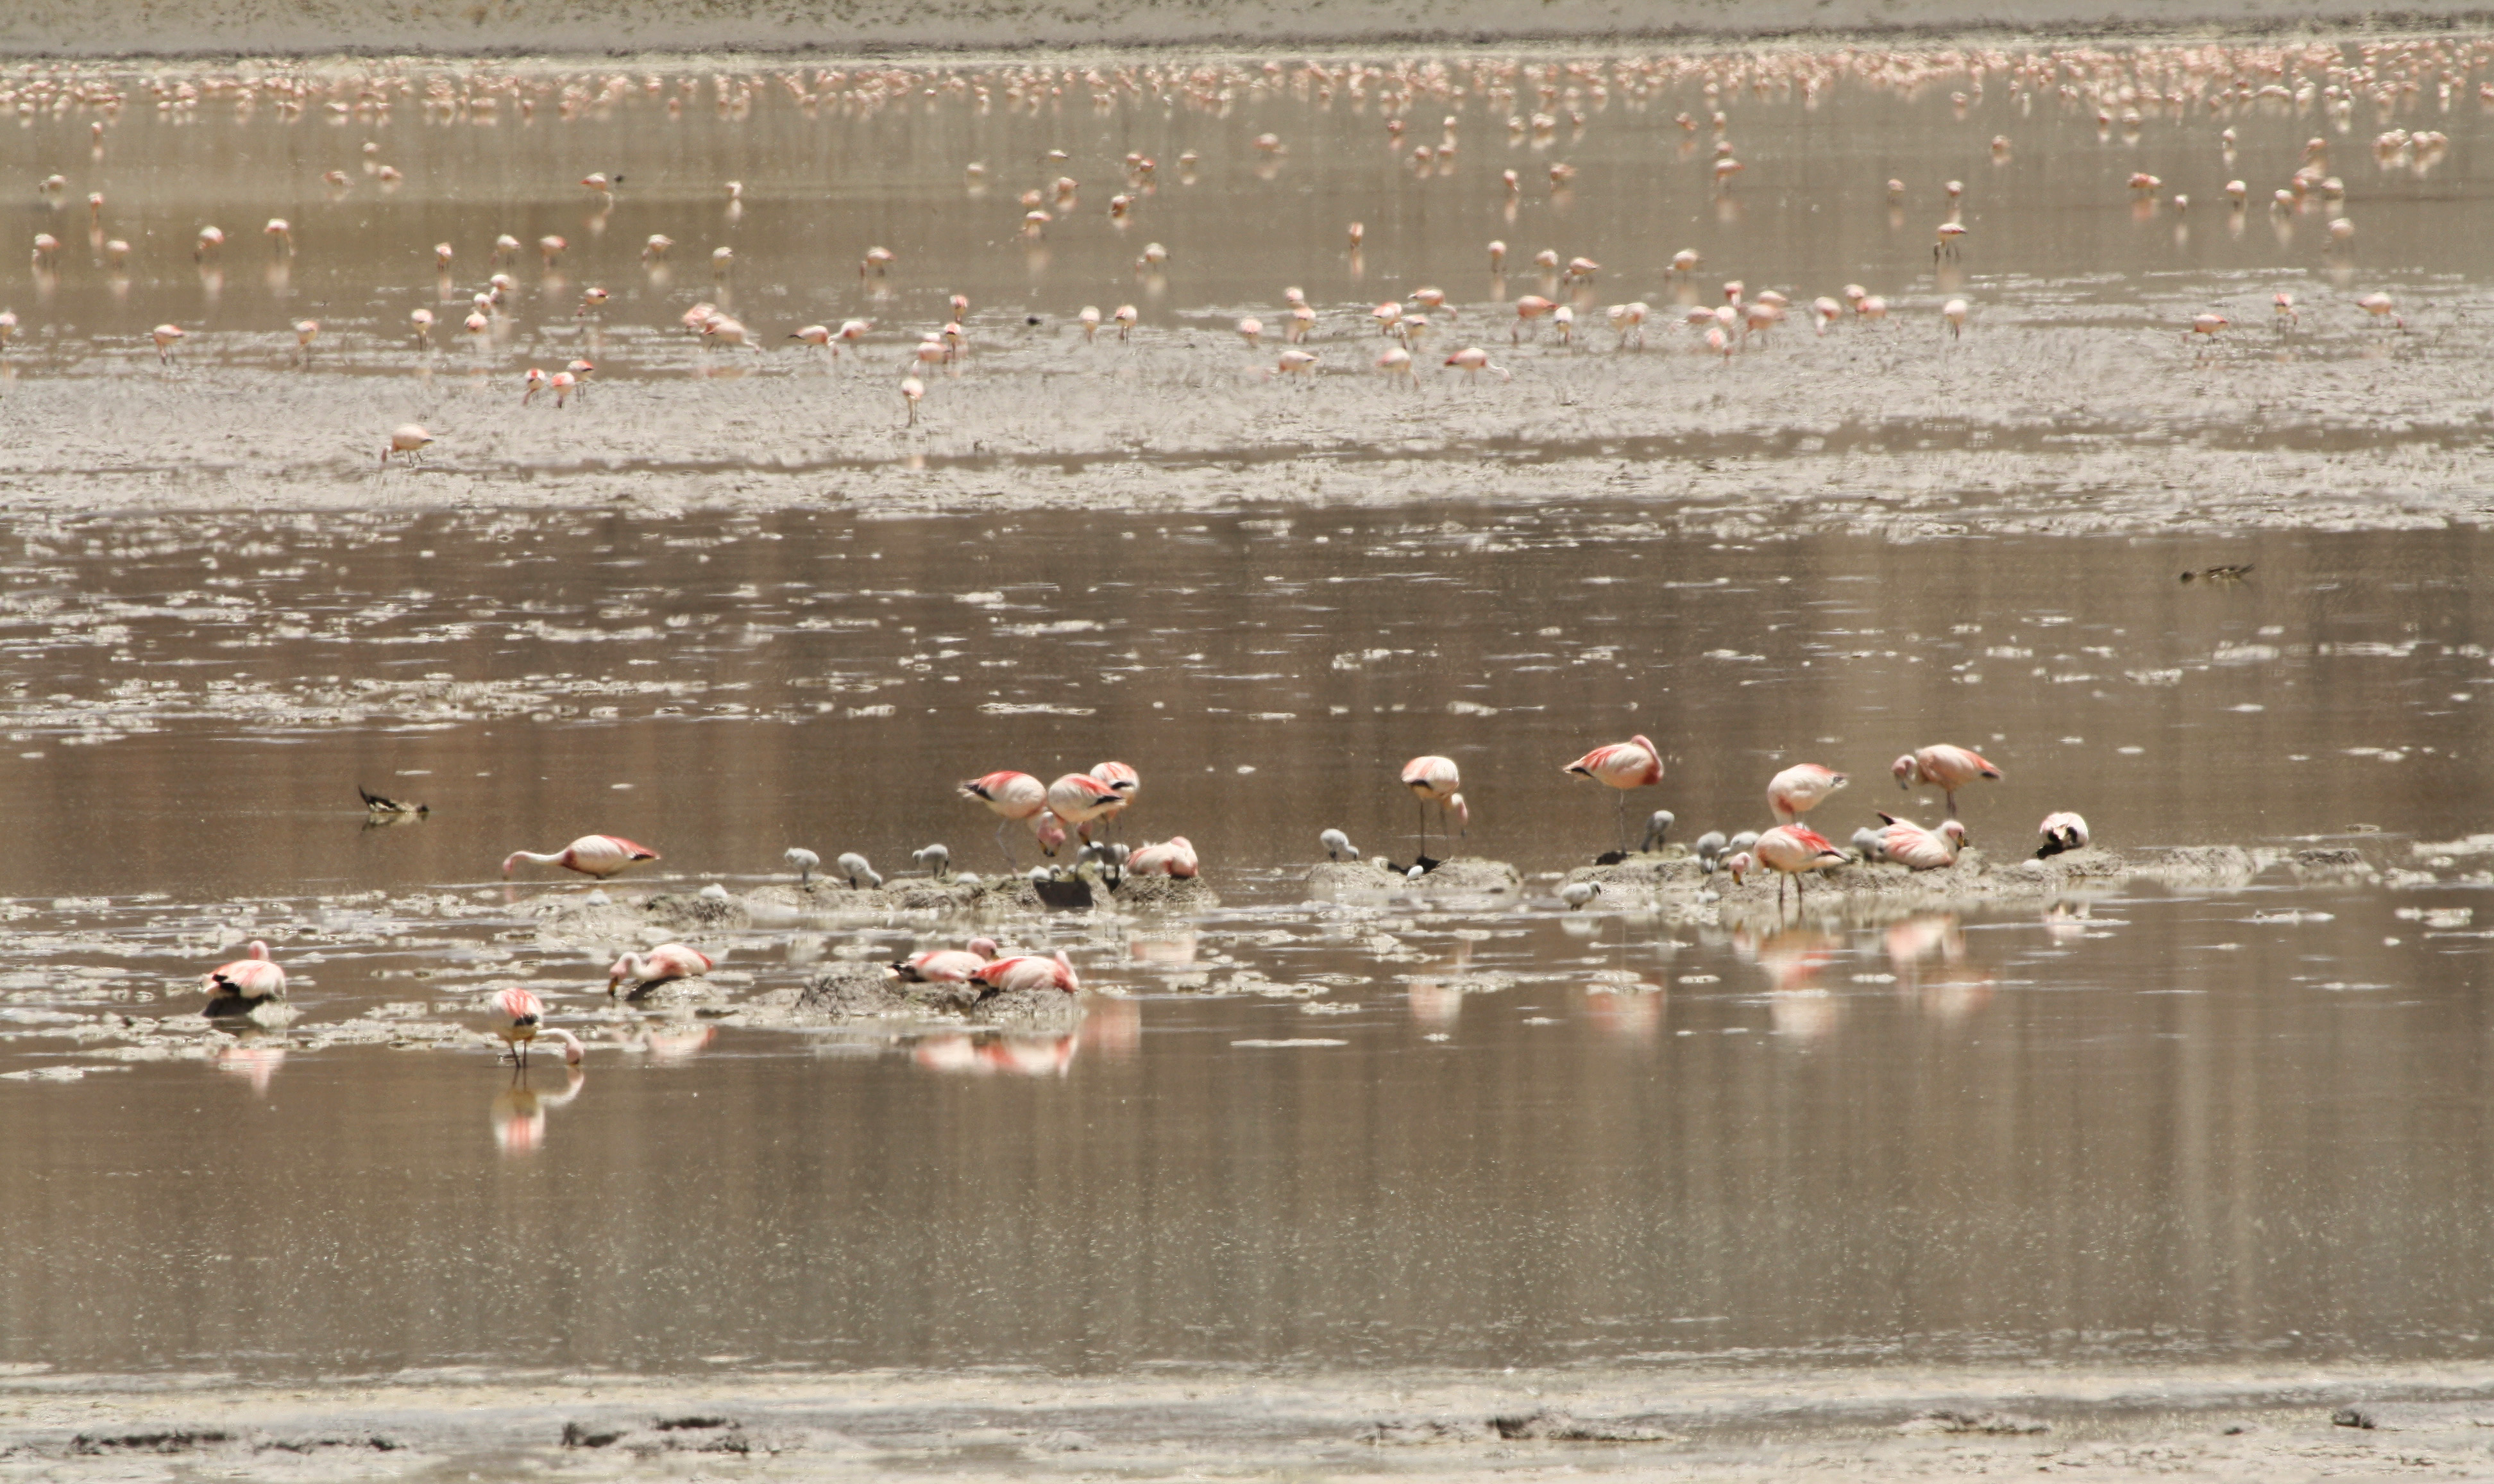 Hundreds of flamingos populate a nesting site where bits of land rise out of the surrounding water.